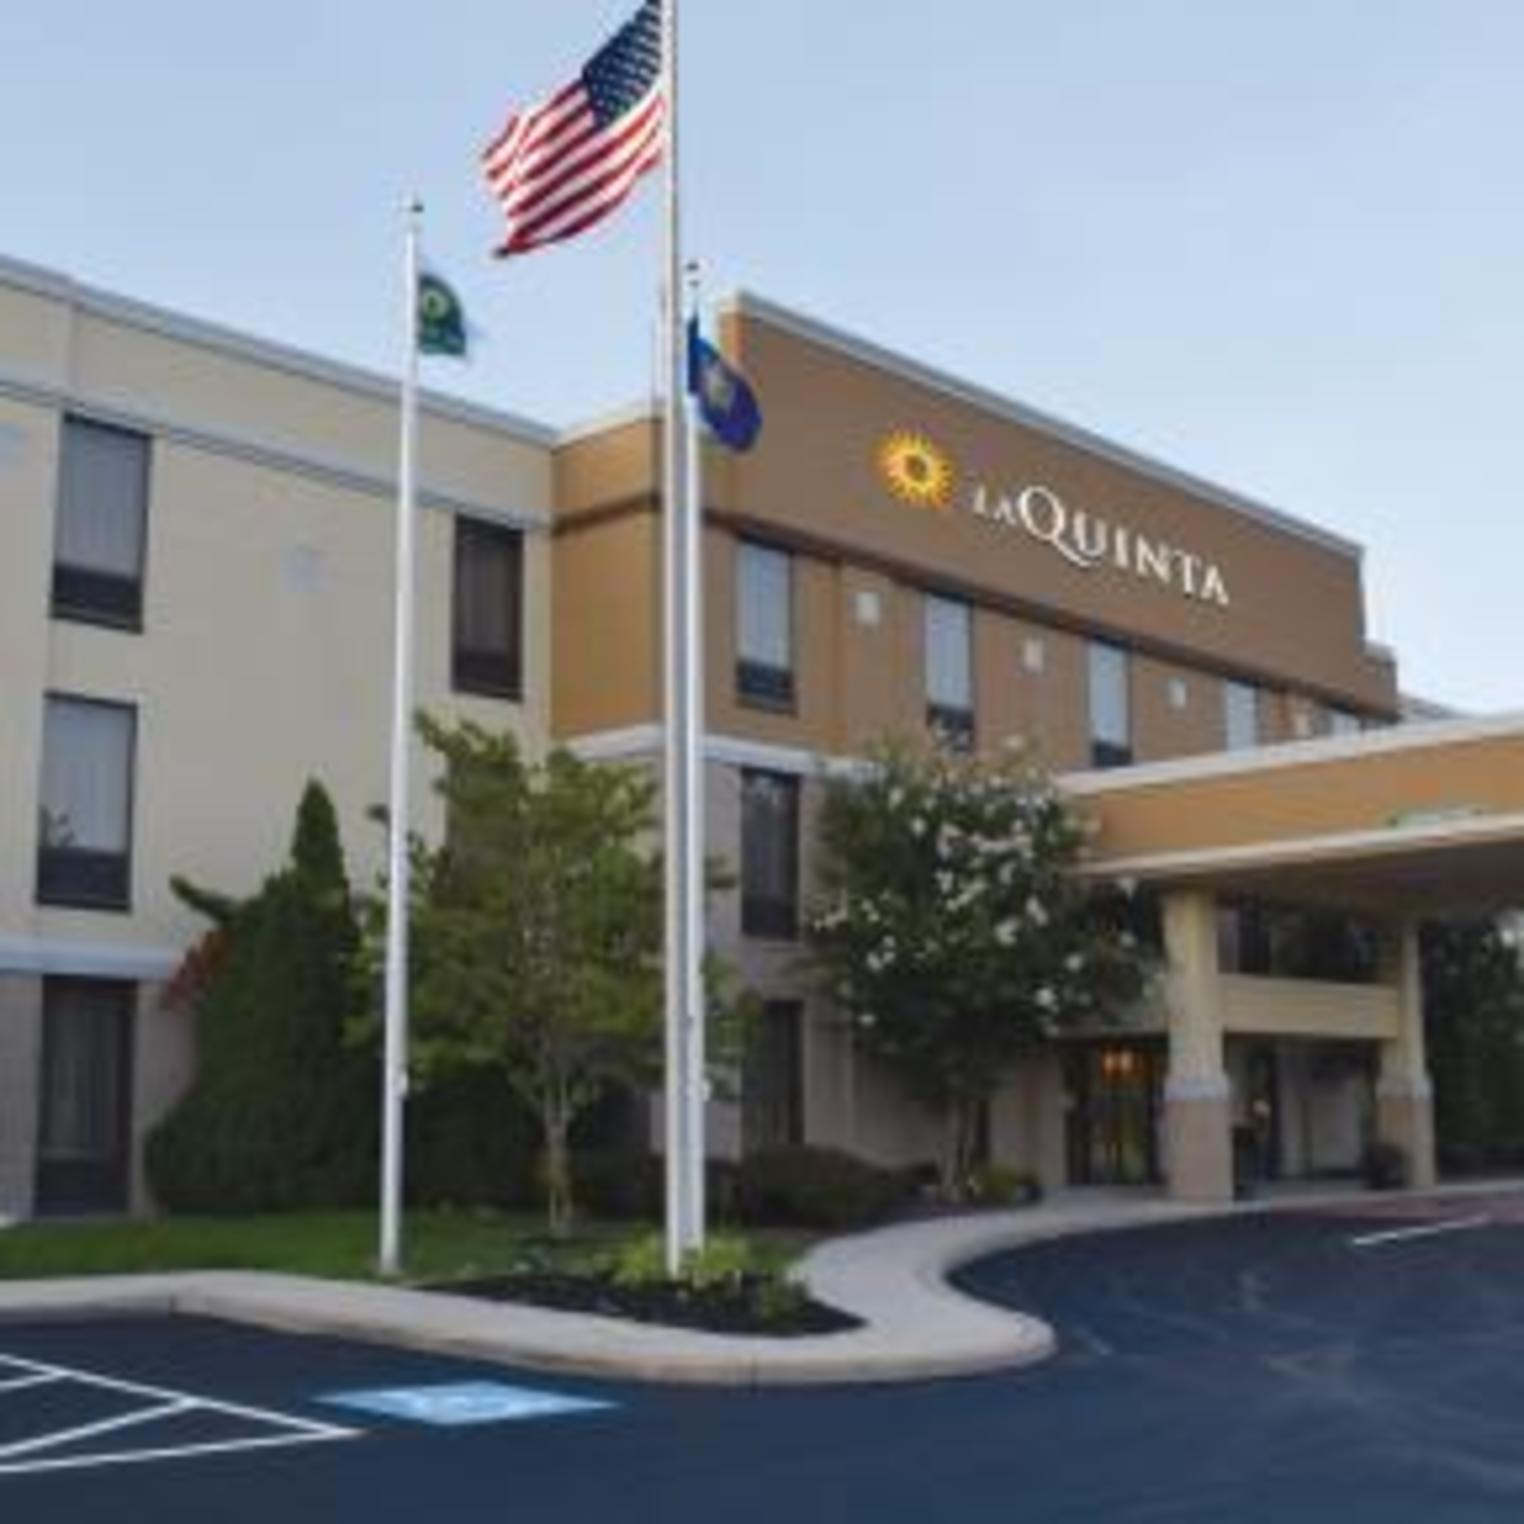 La Quinta Inn & Suites -- Mechanicsburg/Harrisburg